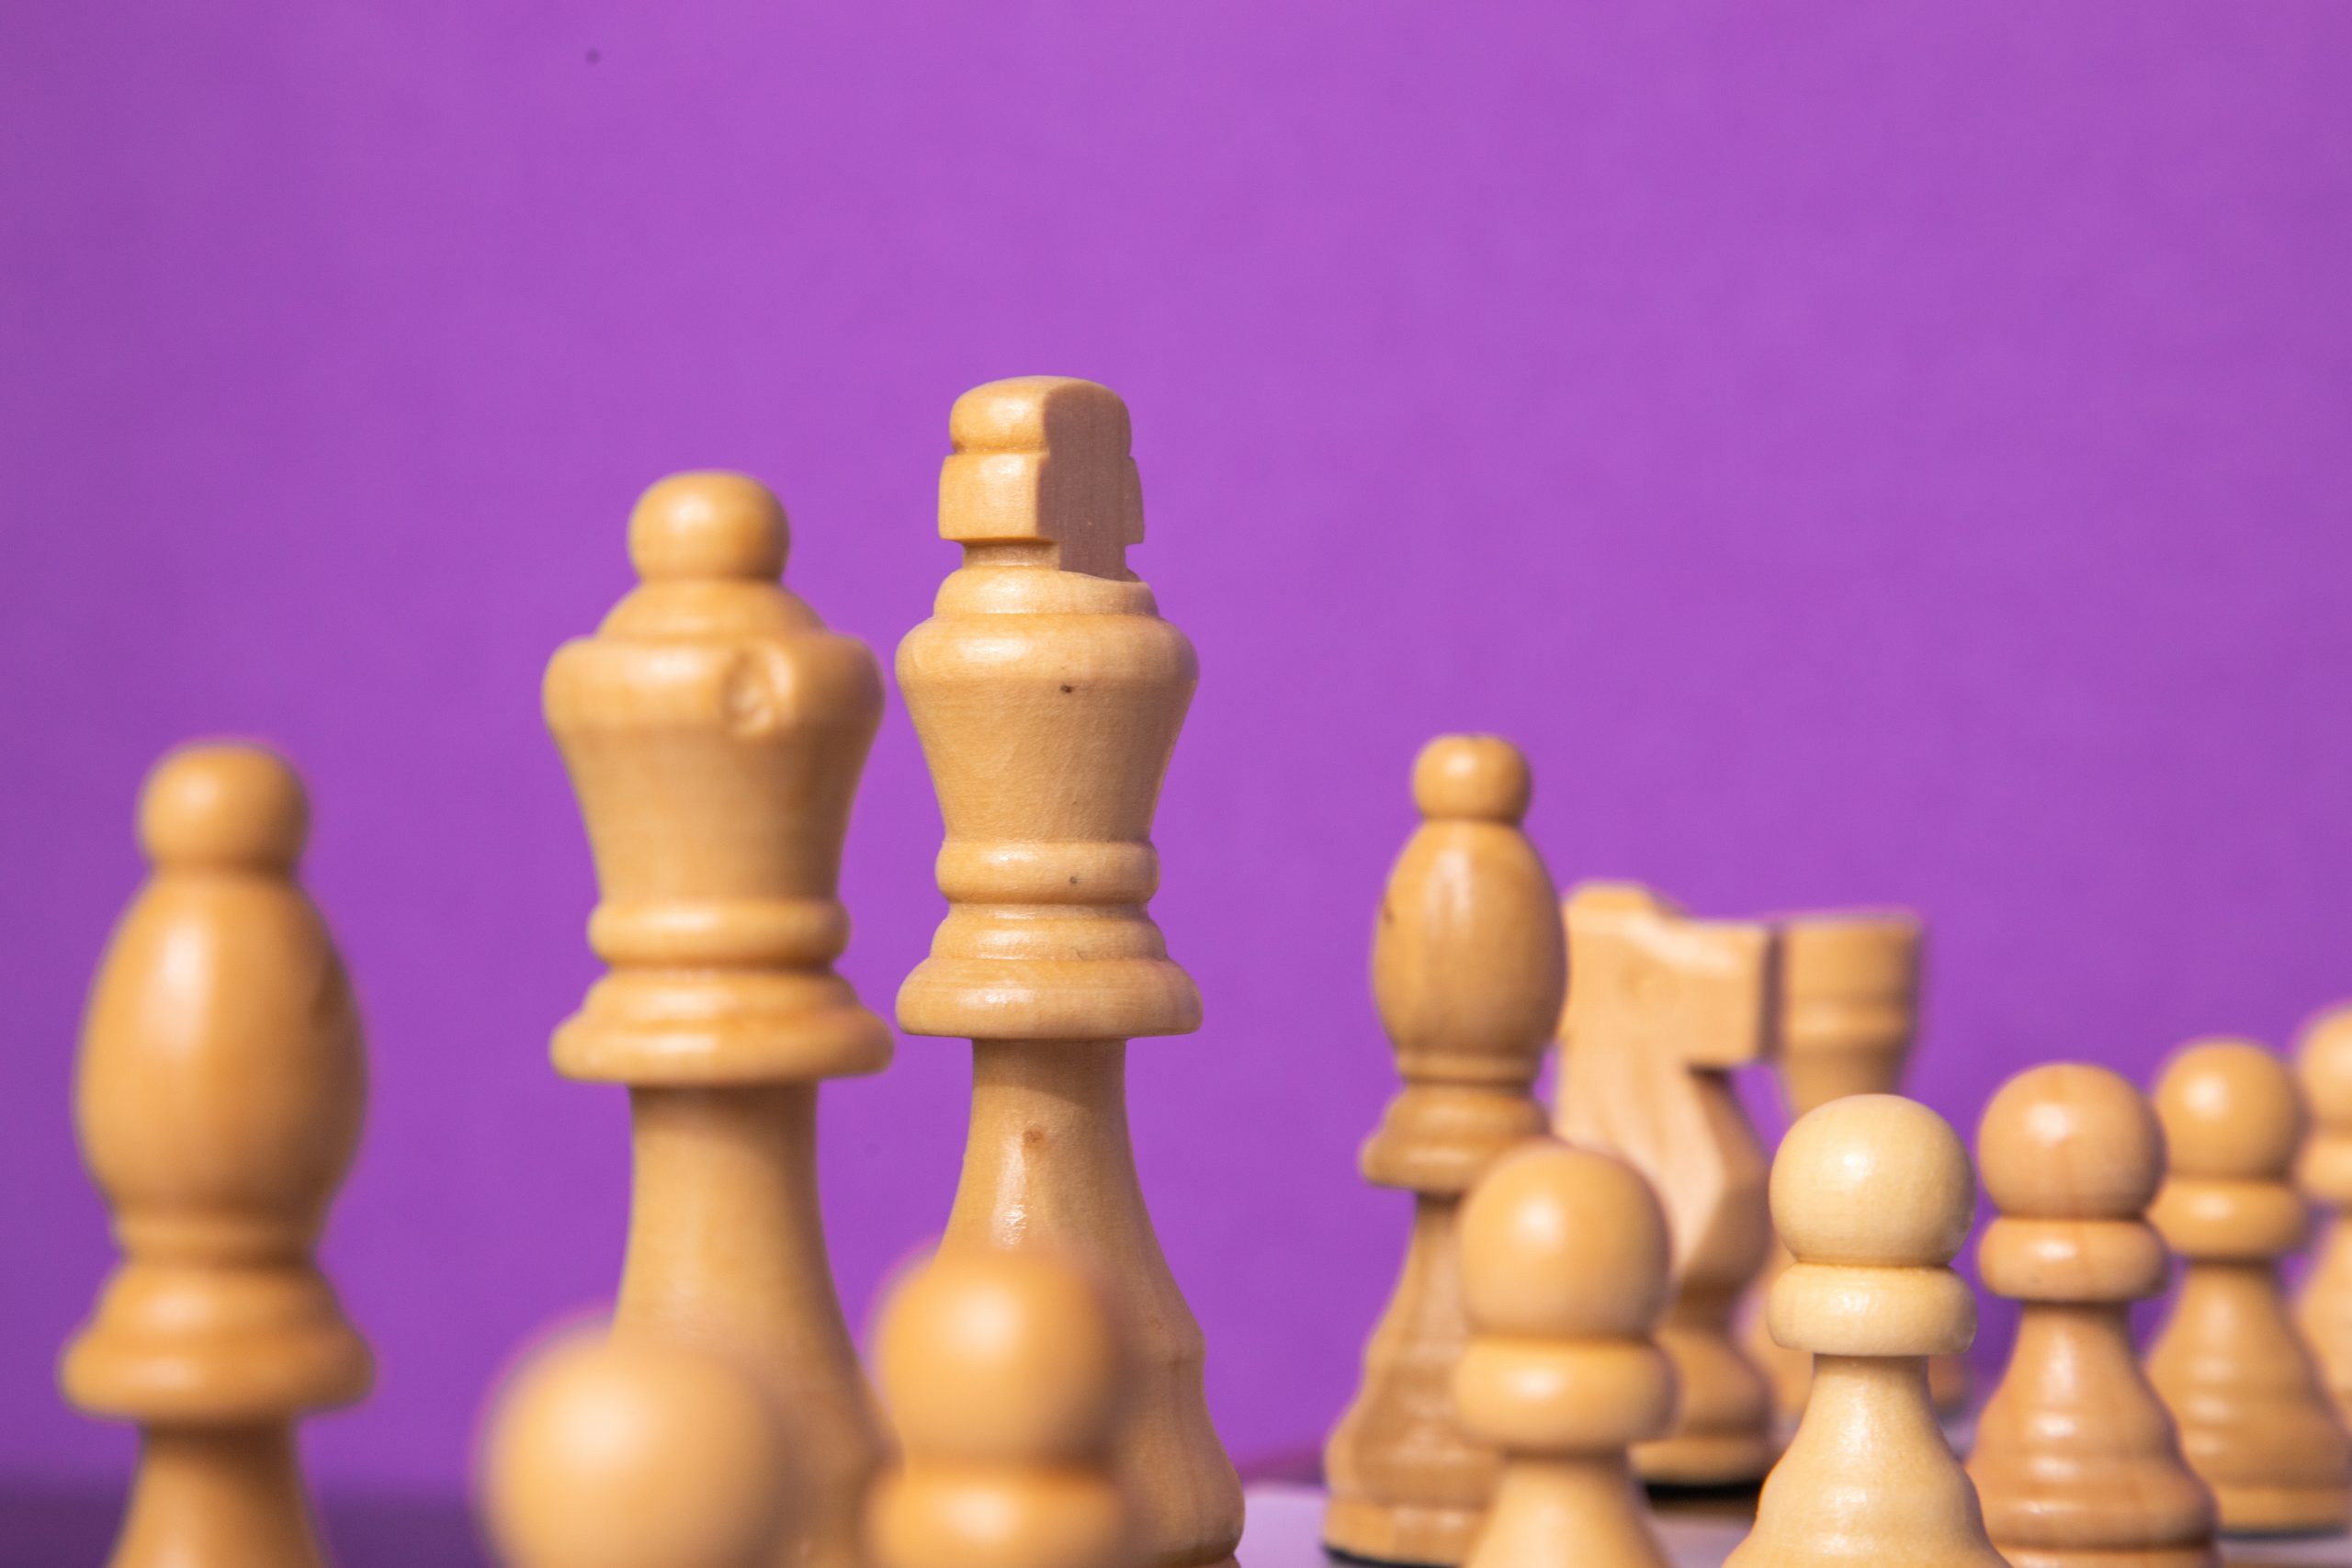 White chess pieces on purple background